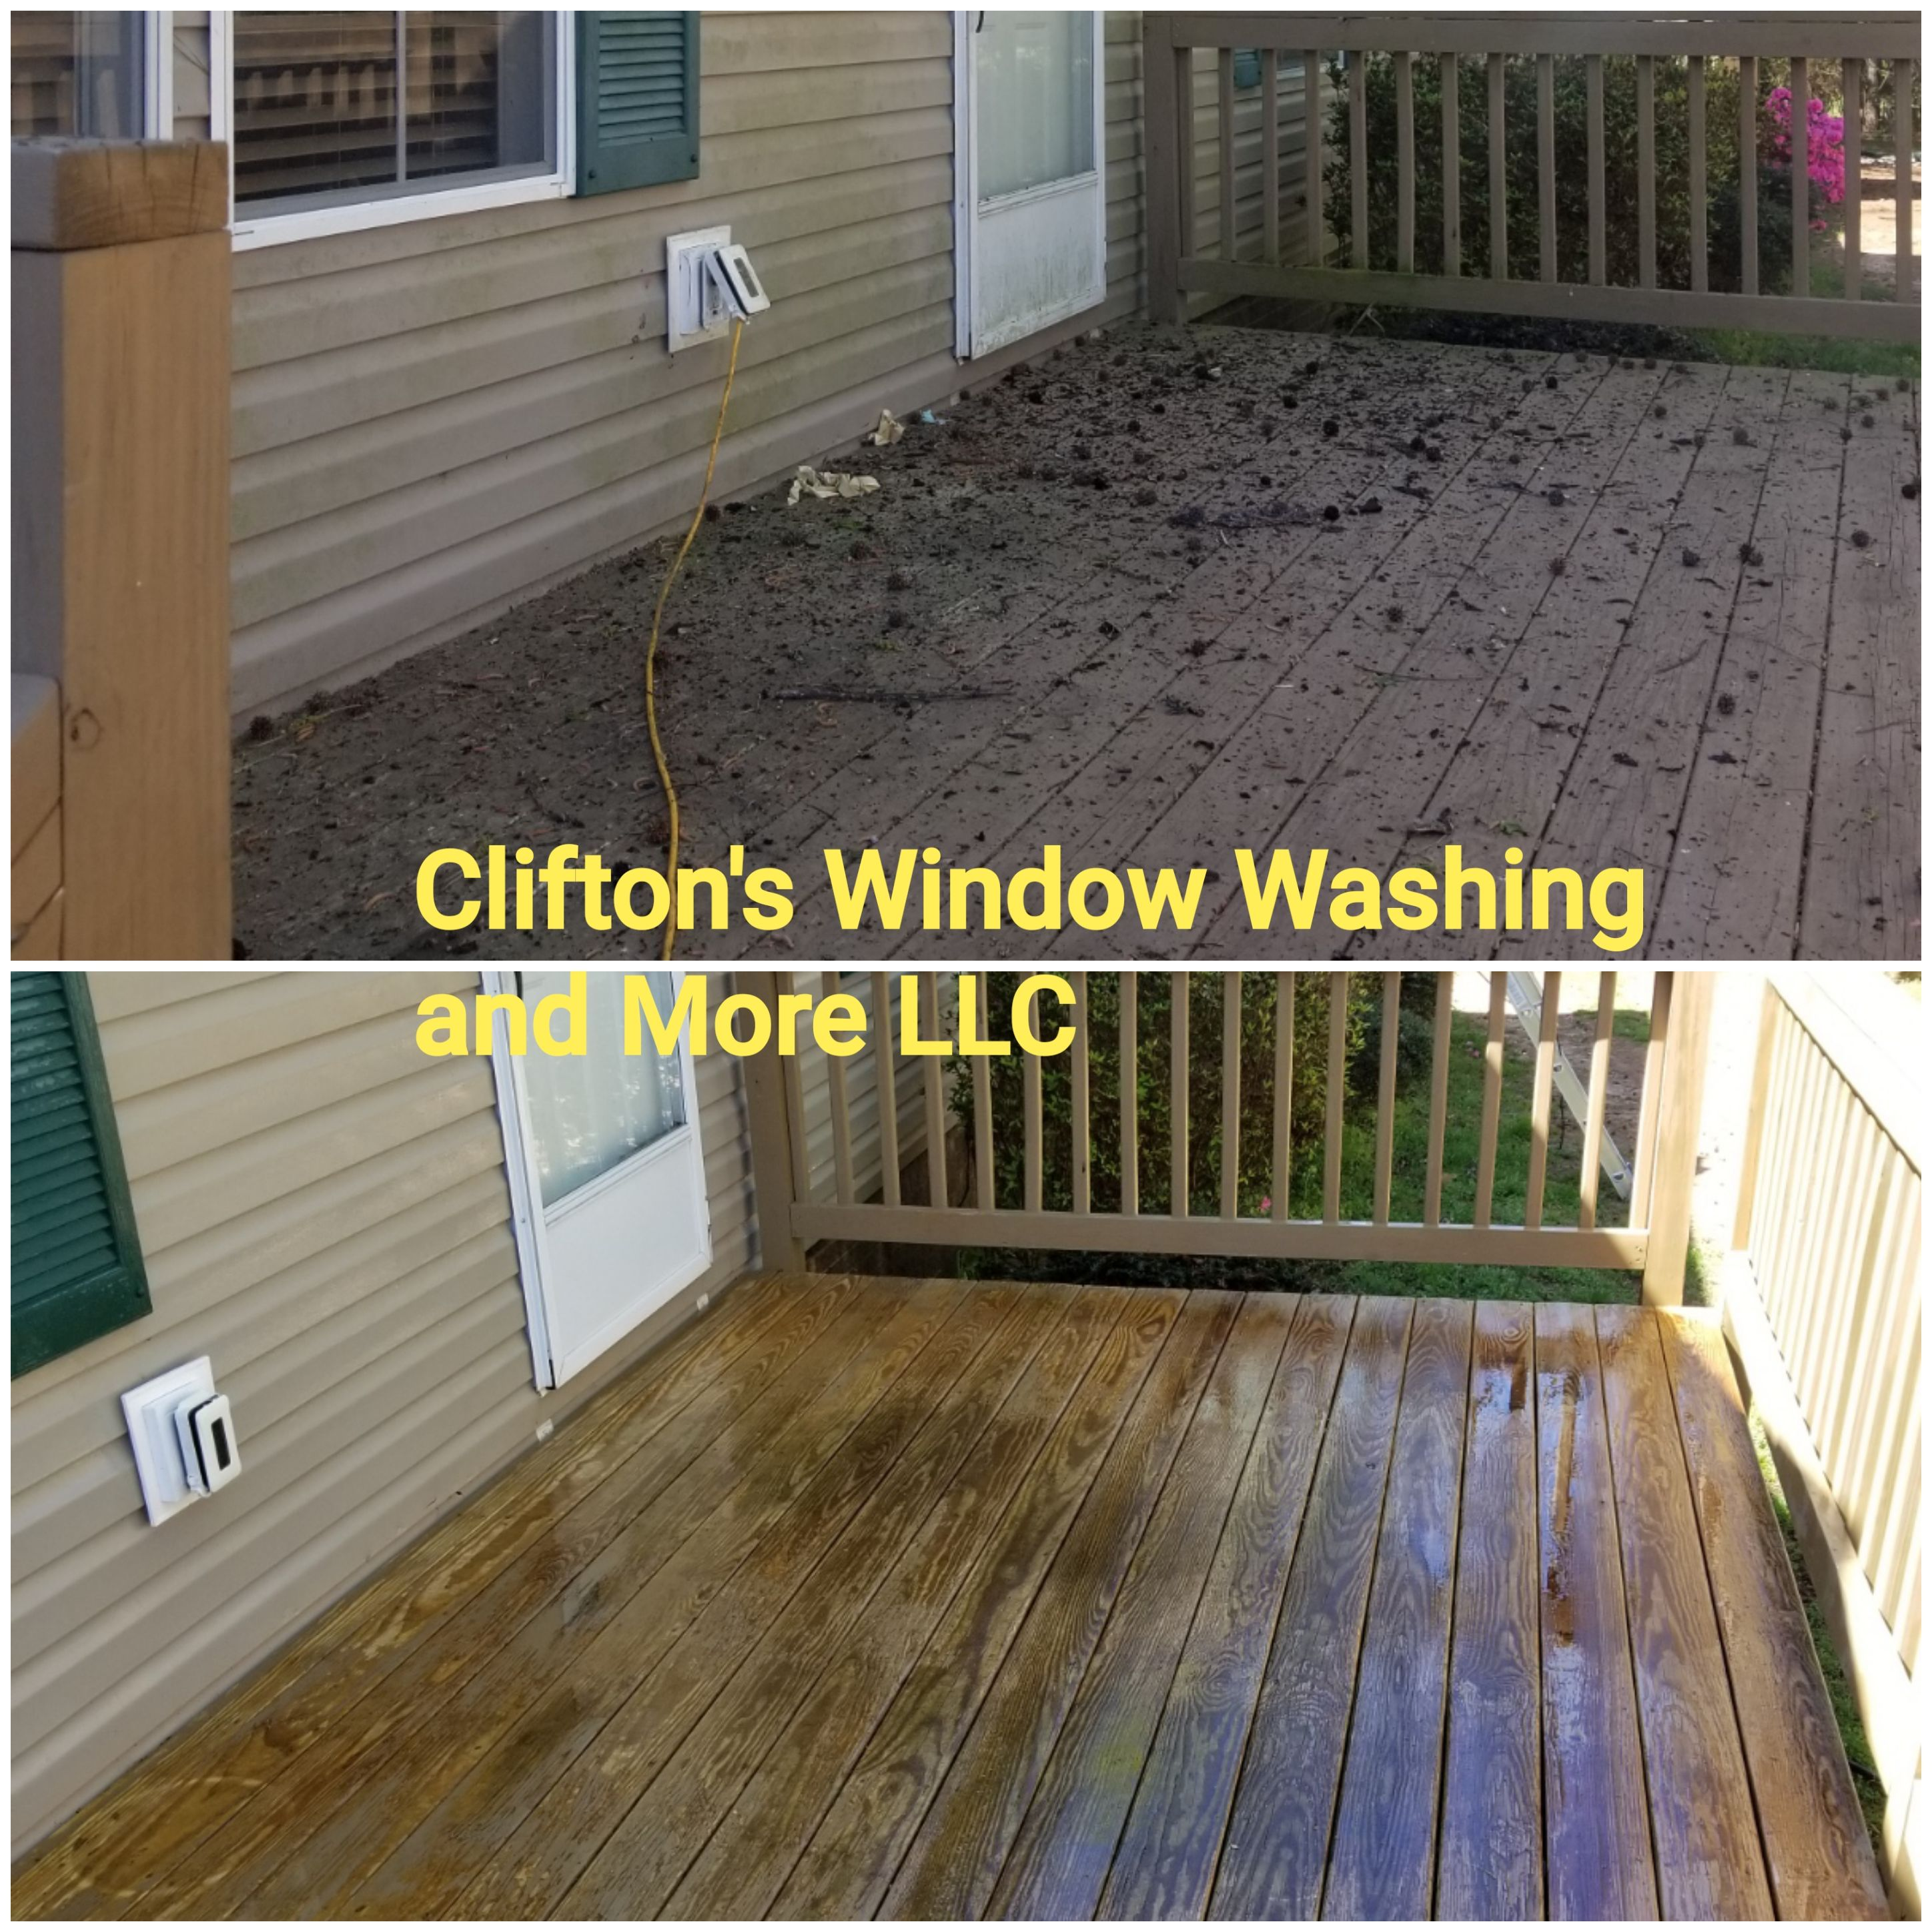 Pin On Clifton's Window Washing And More